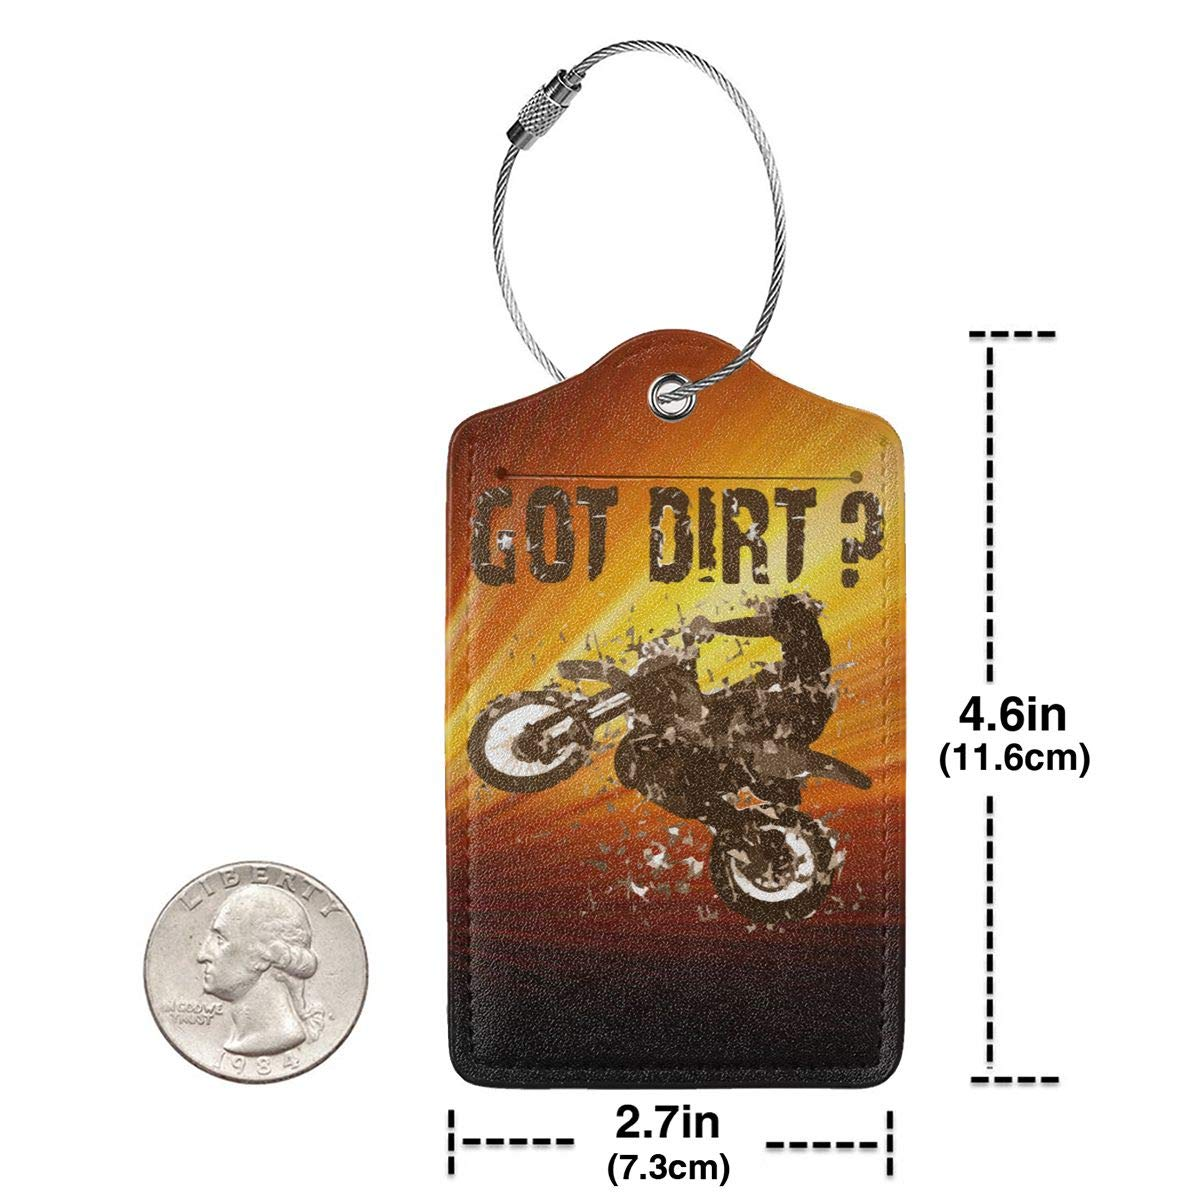 Got Dirt Bike Motorcross Racing Travel Luggage Tags With Full Privacy Cover Leather Case And Stainless Steel Loop